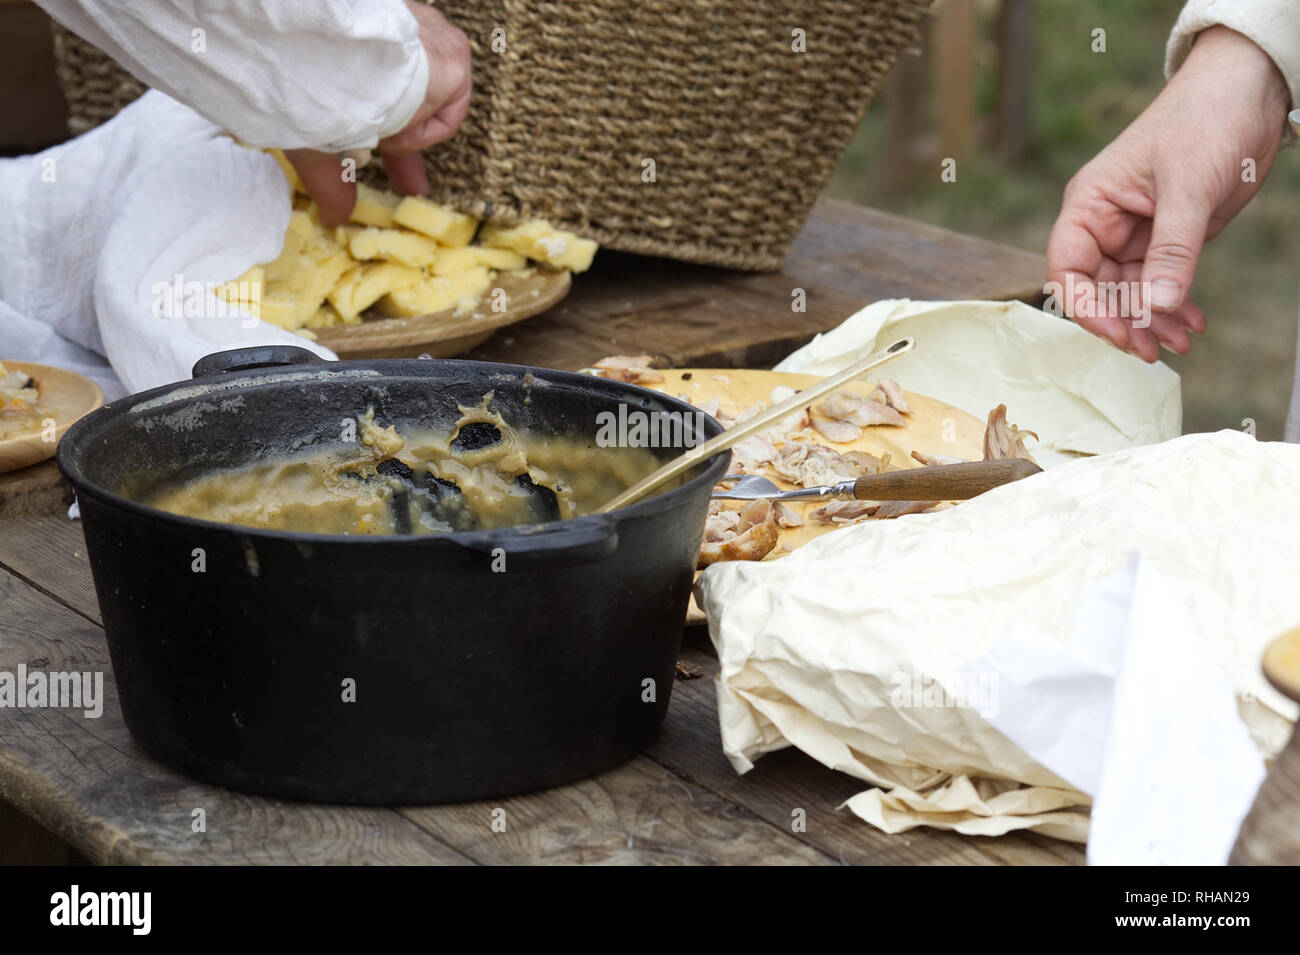 feeding the armies in medieval times - Stock Image